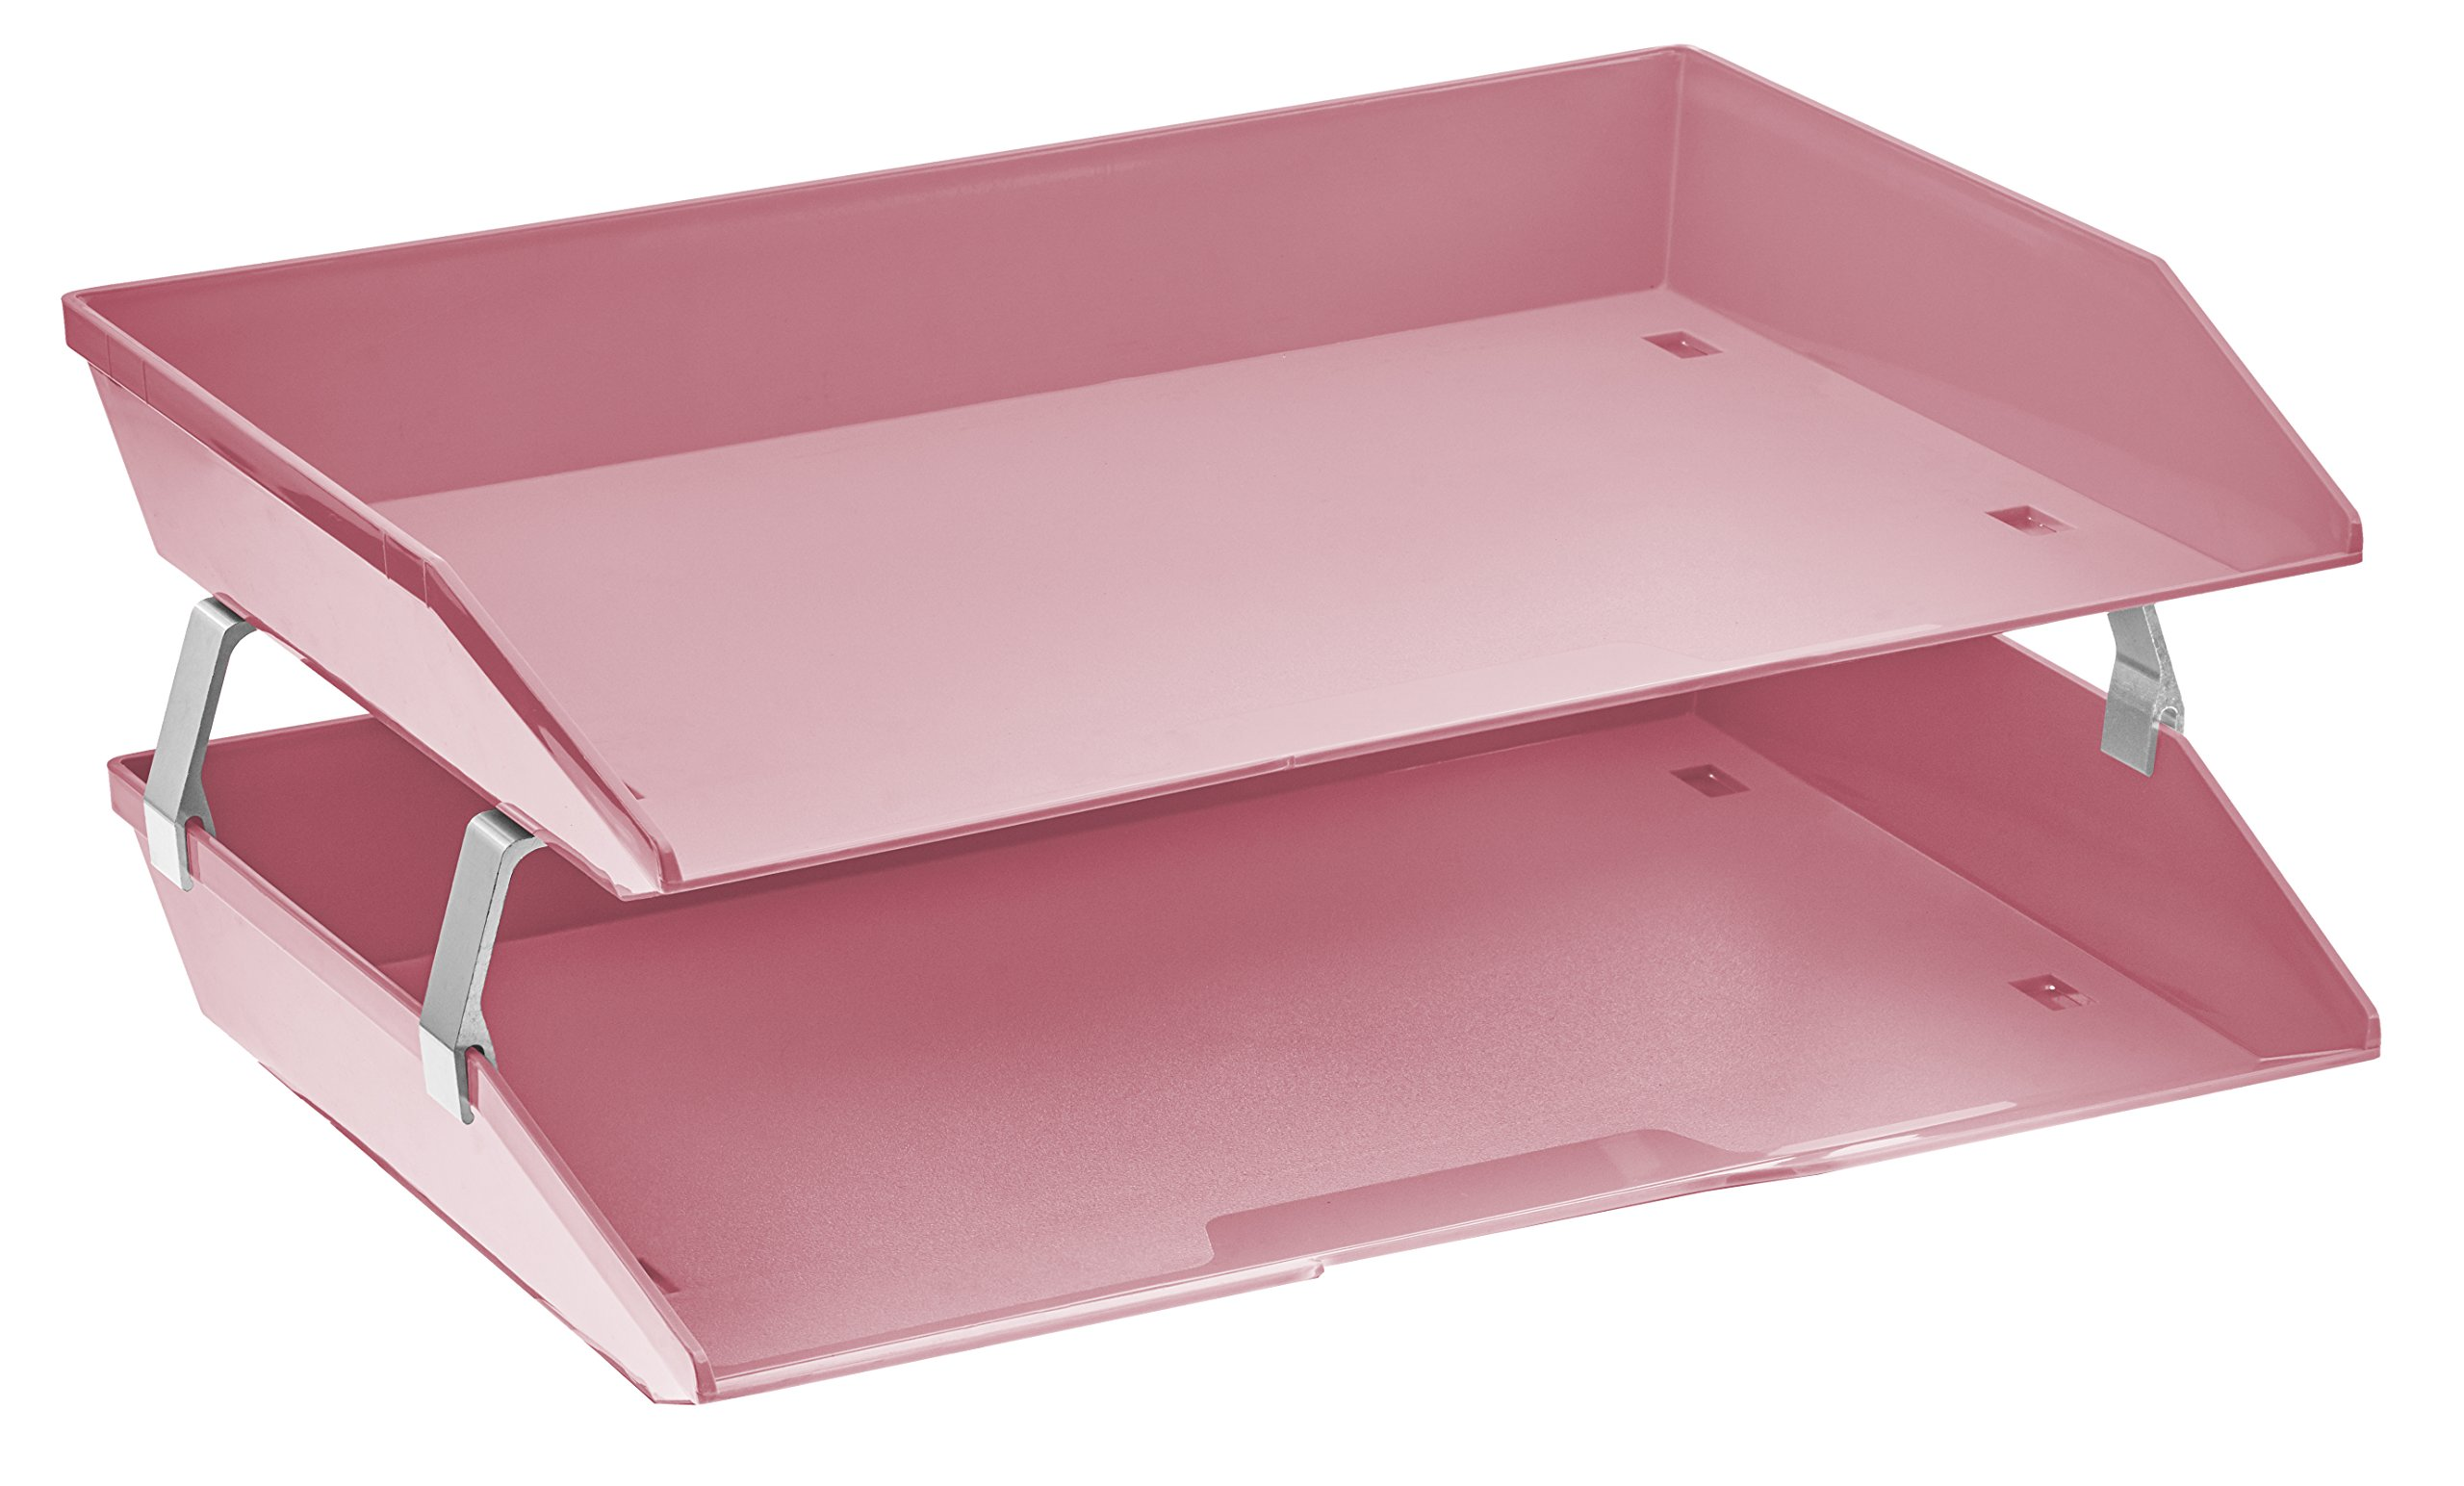 Acrimet Facility 2 Tiers Double Letter Tray (Solid Pink Color)